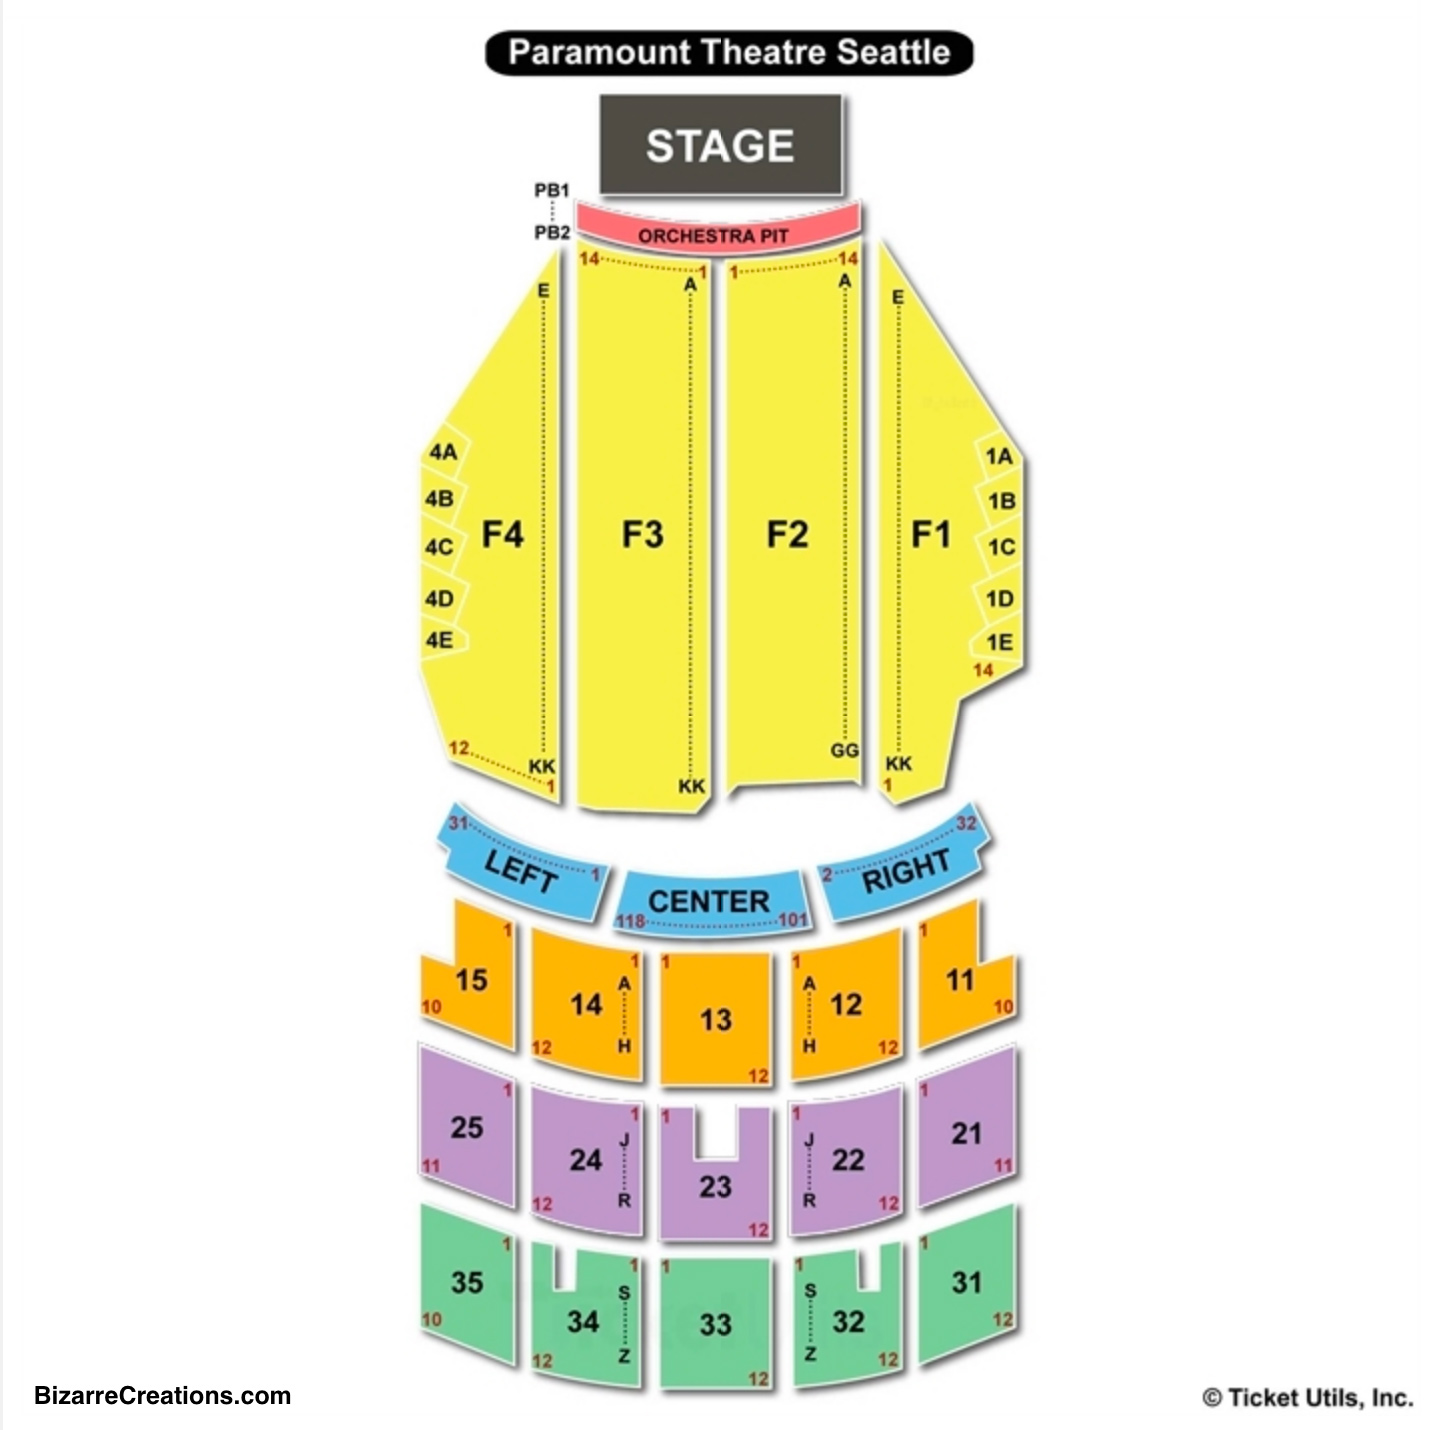 Paramount Theatre Seating Chart Seattle Seating Charts Tickets